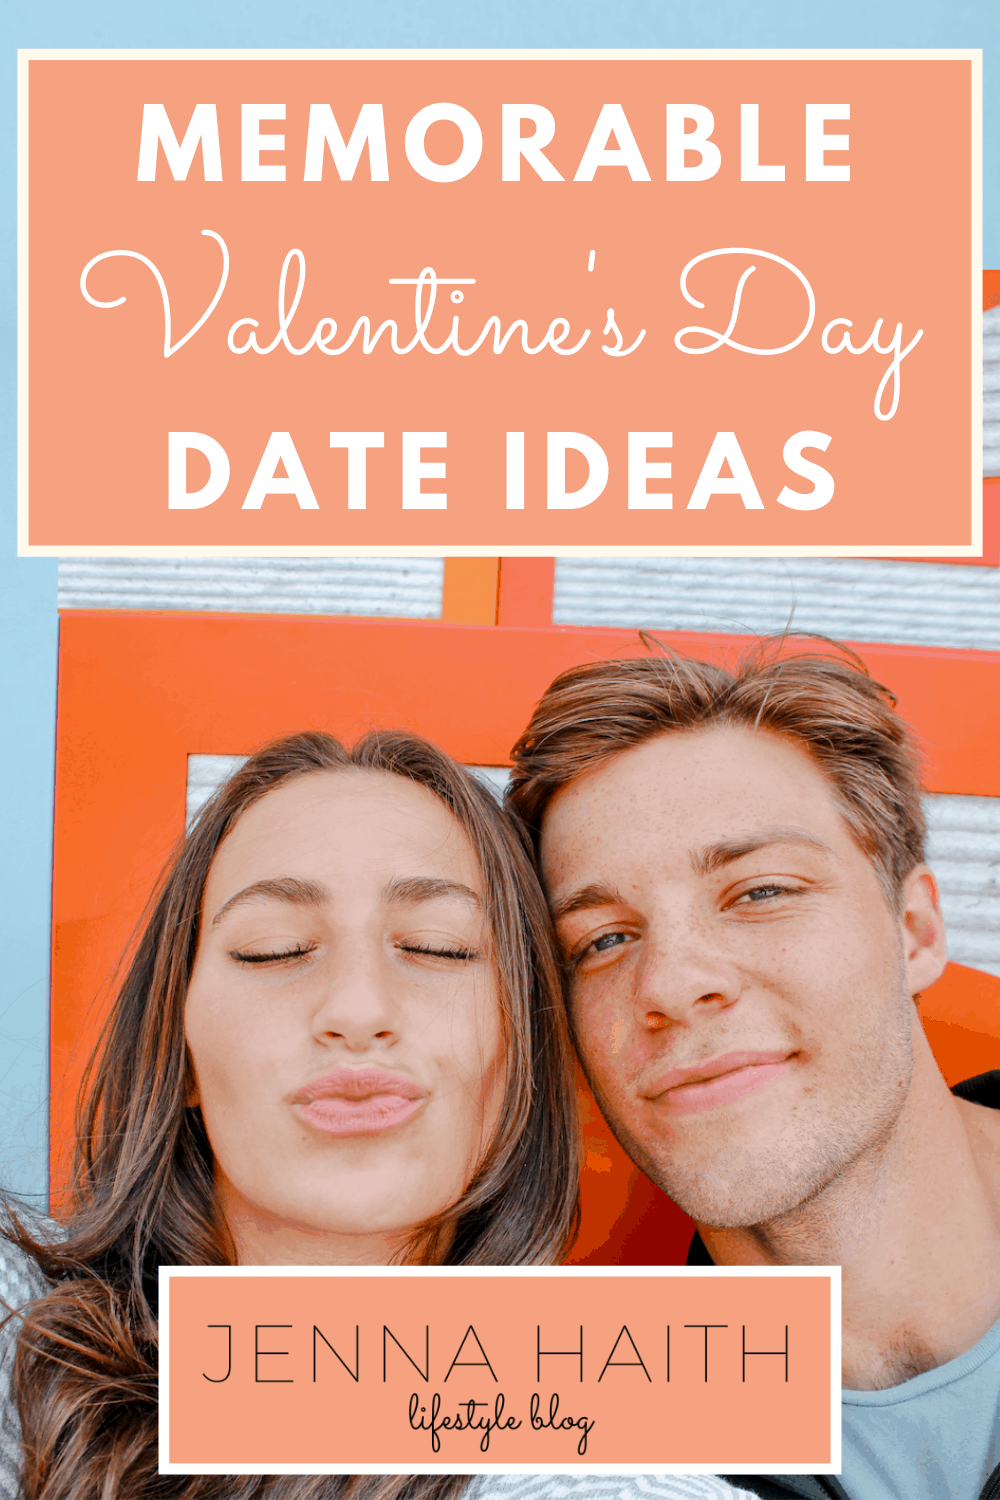 Memorable Valentine's Day Date Ideas